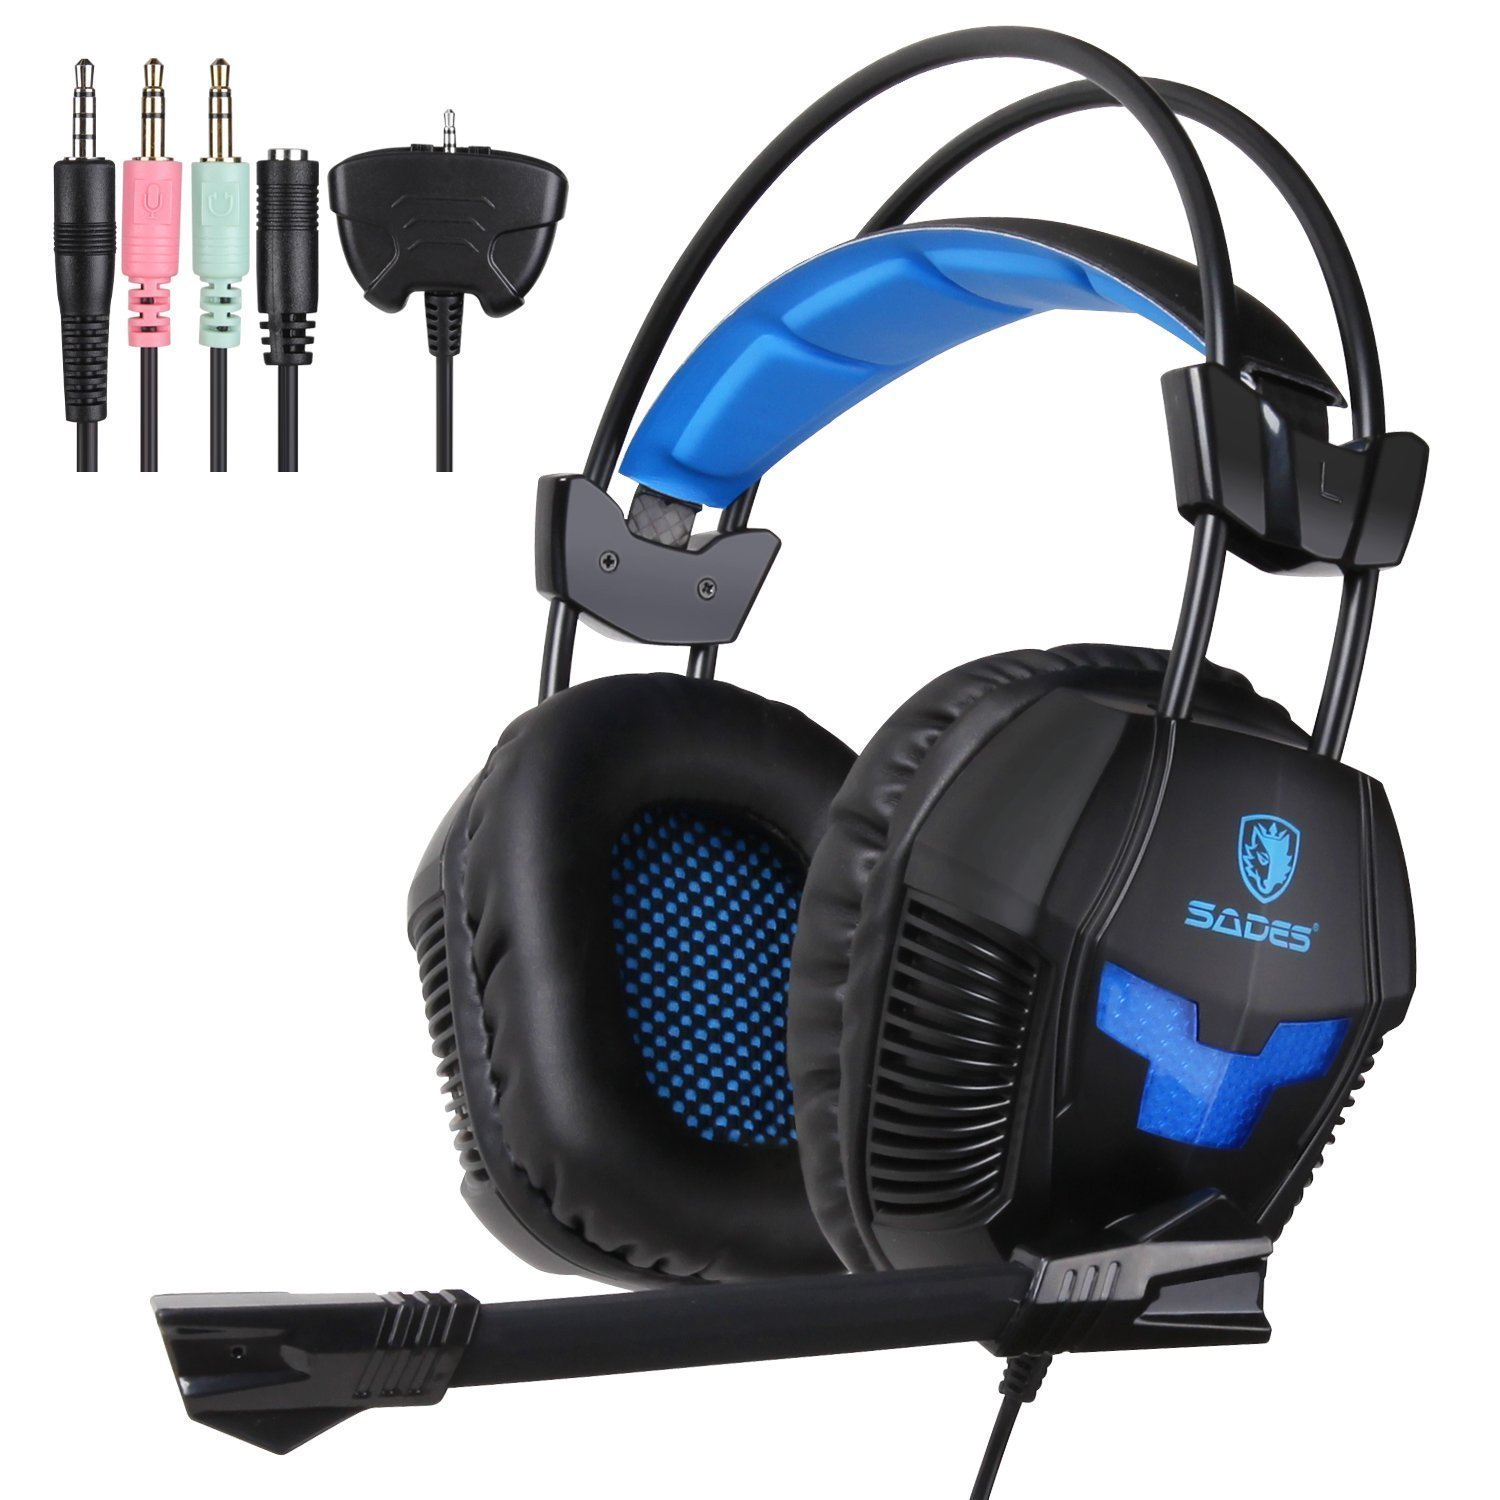 Yanni PS4 Gaming Headset, SA921 Lightweight Stereo Headphones Over Ear with Mic, Volume Control for PC Mac Computer iPhone Smart Phone Laptop iPad Mobile(Black Blue) by SADES